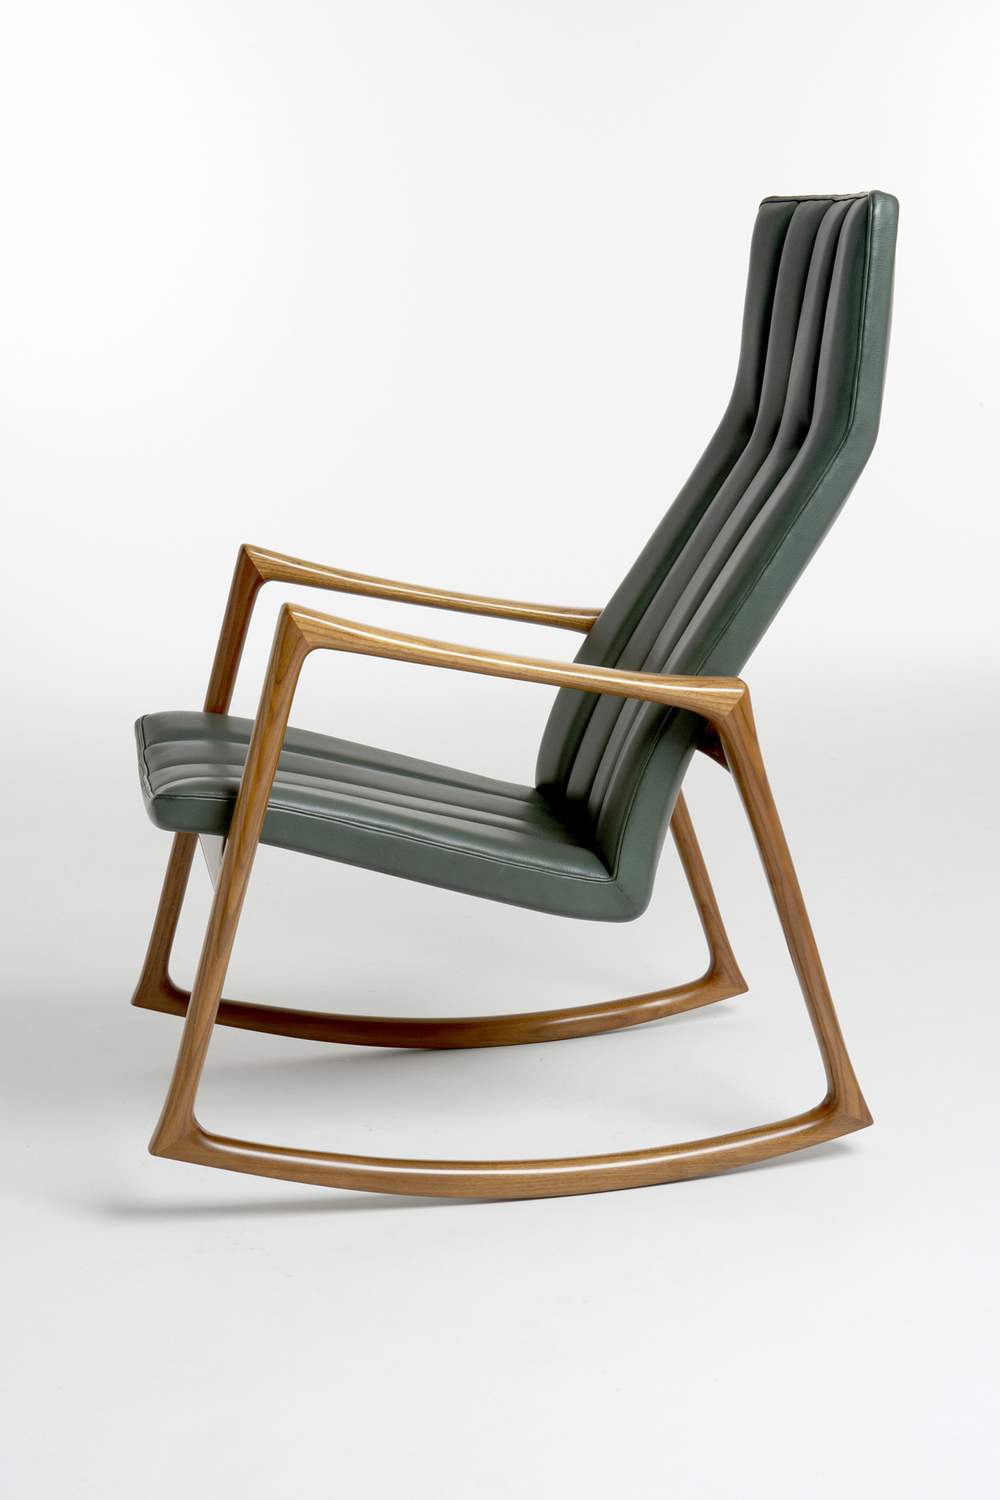 Jensen 1961 Rocking Chair in Walnut